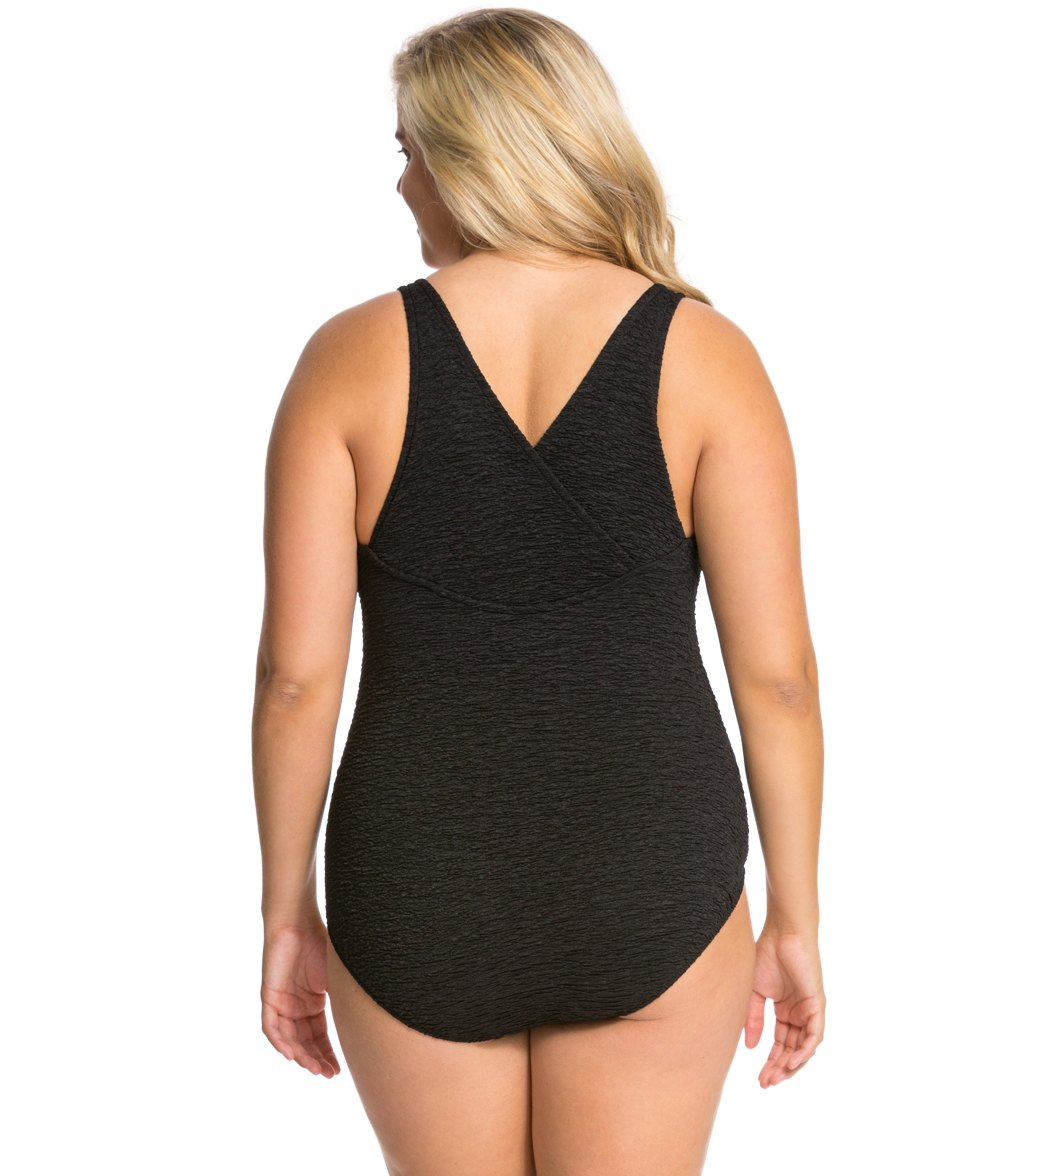 049c5f52ba4 Penbrooke Krinkle Plus Size Chlorine Resistant One Piece Cross Back Swimsuit